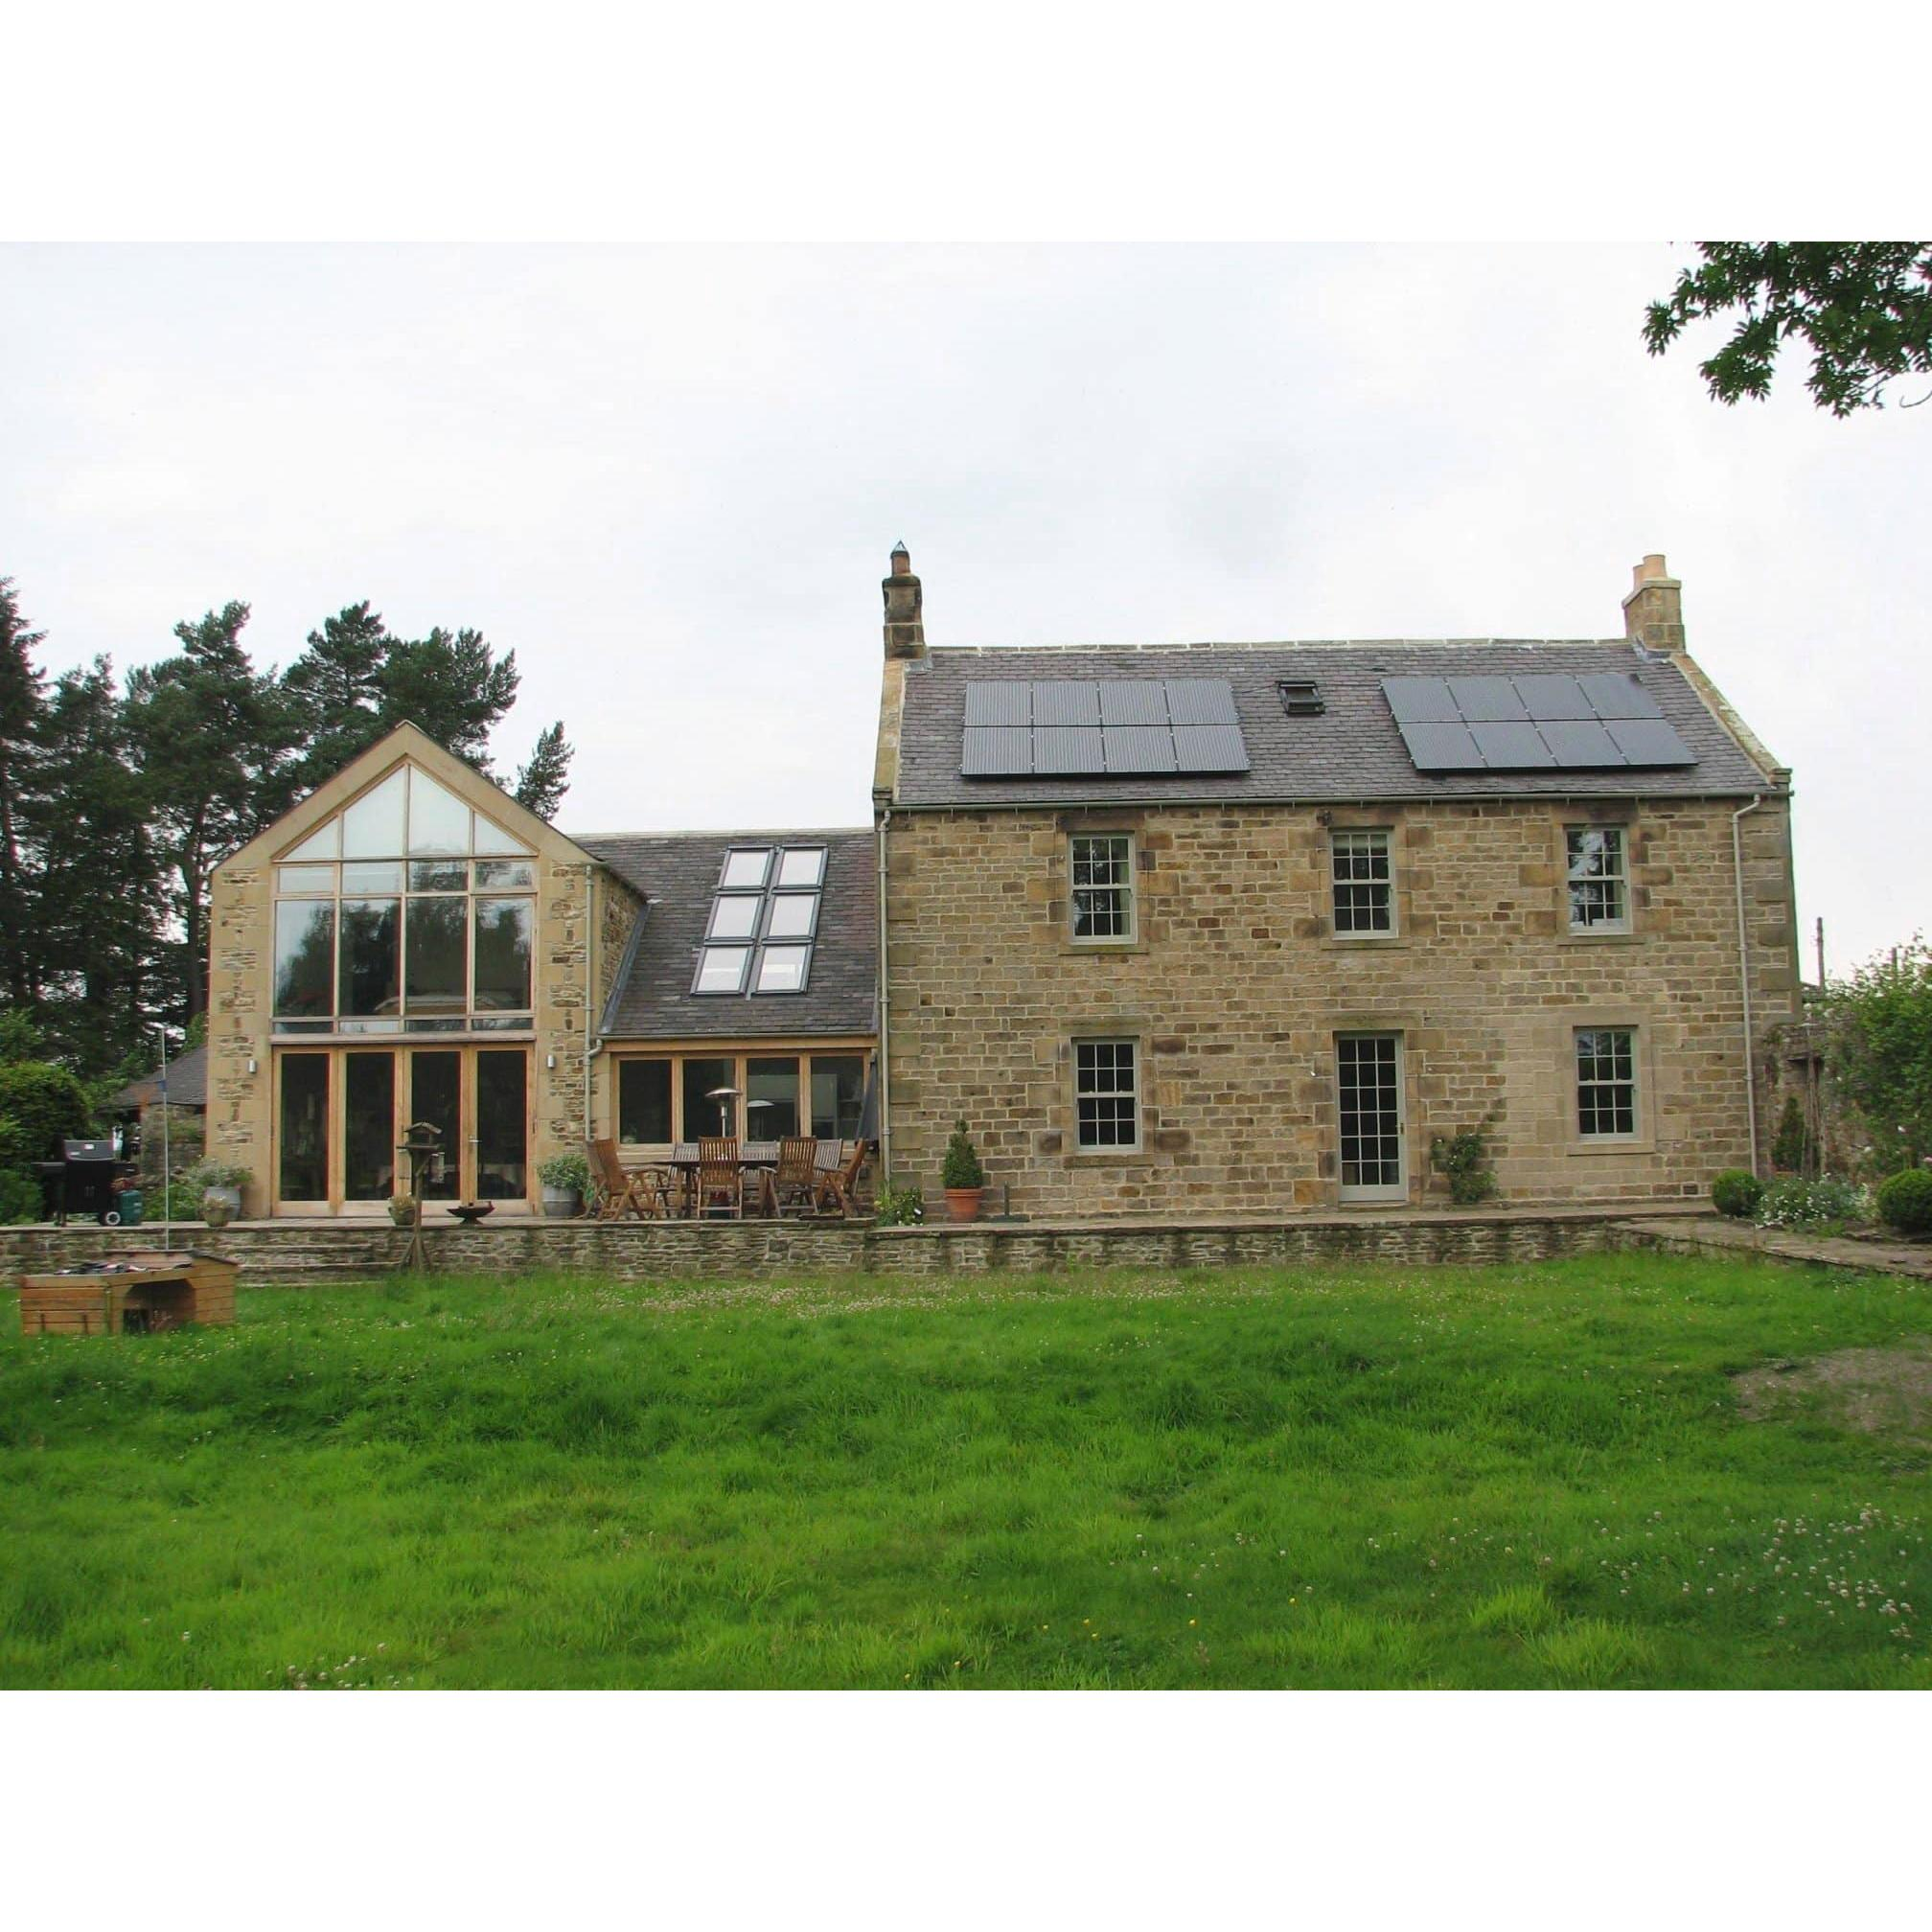 Gracey Architectural Design & Building Surveying - Richmond, North Yorkshire DL10 4RW - 01748 822838 | ShowMeLocal.com